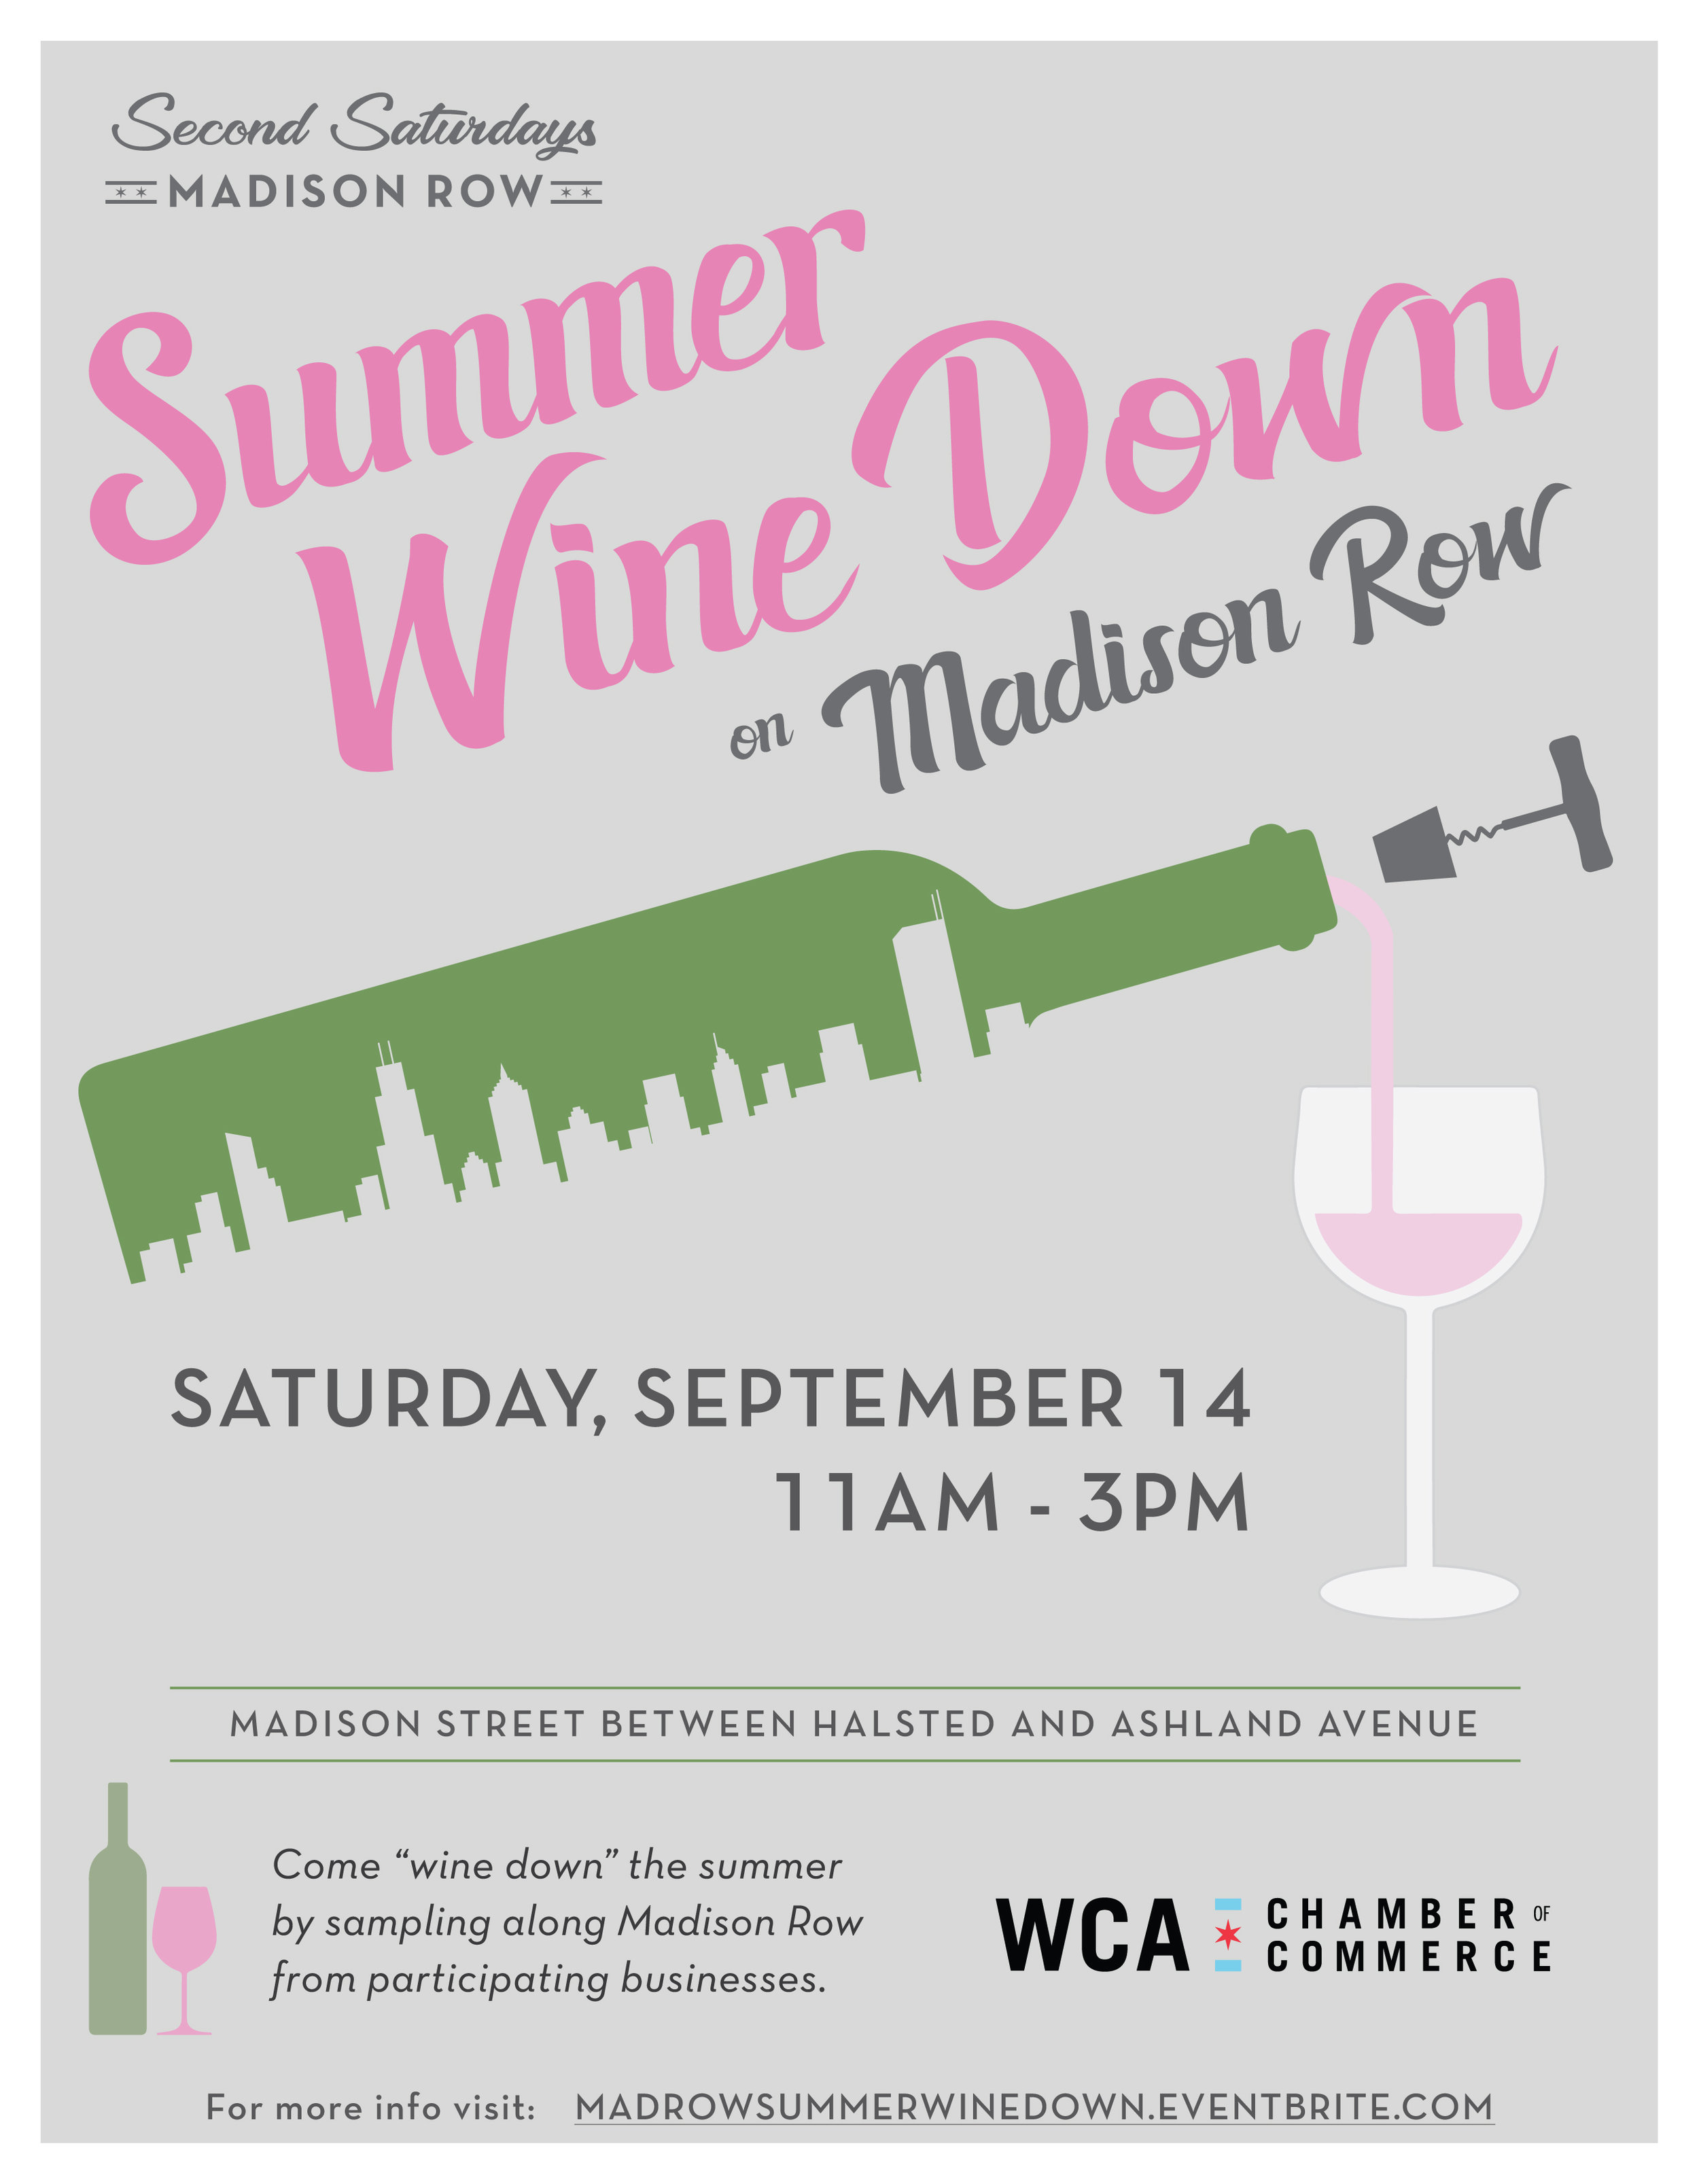 2019 Madison Row Saturday Events -WINE DOWN--V2-_LETTER FLYER.jpg